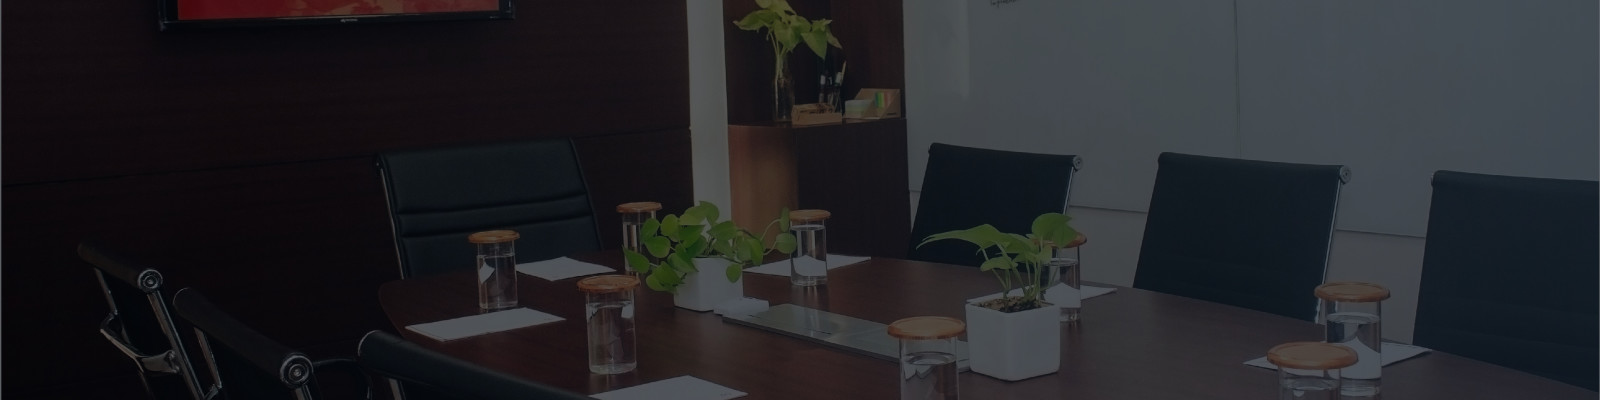 Meeting rooms in Jaipur